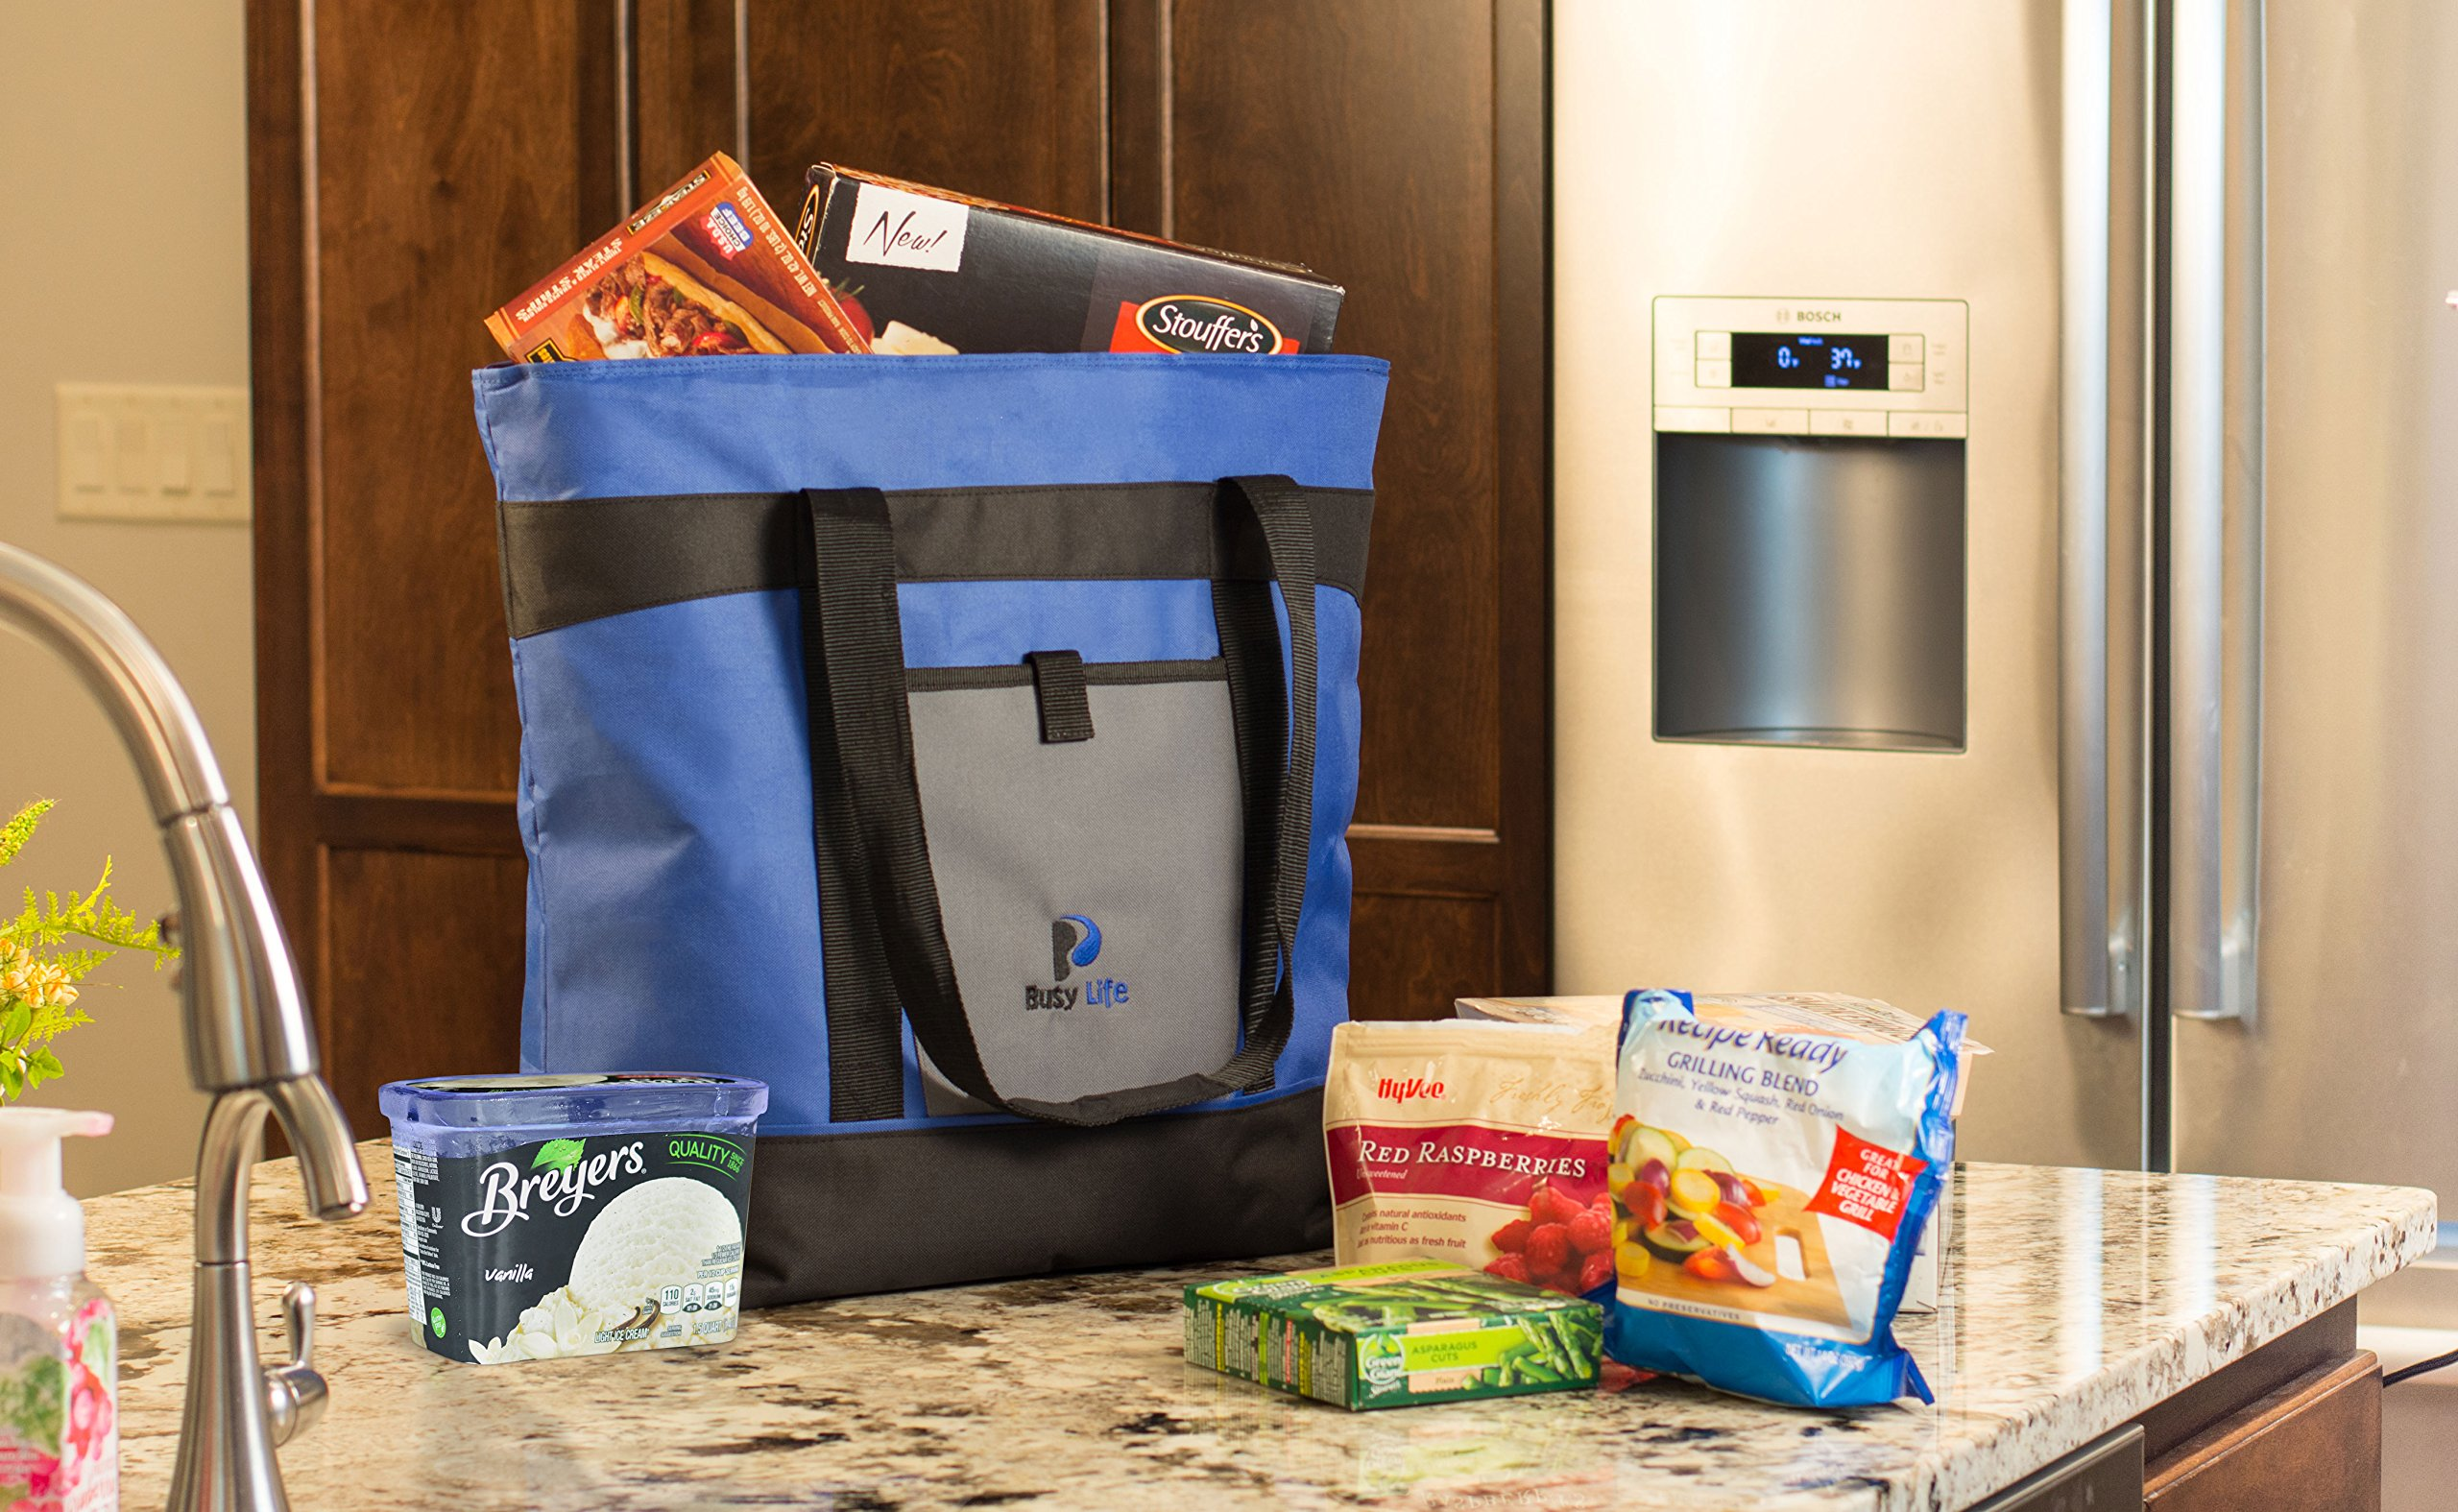 Insulated Cooler Bag Gift Pack. Busy Life Insulated Grocery Tote Perfect for Hot and Cold Food. Large 10 Gallon Capacity - Never Bring Home Melted Ice Cream Again. (4 Units) by Busy Life (Image #2)